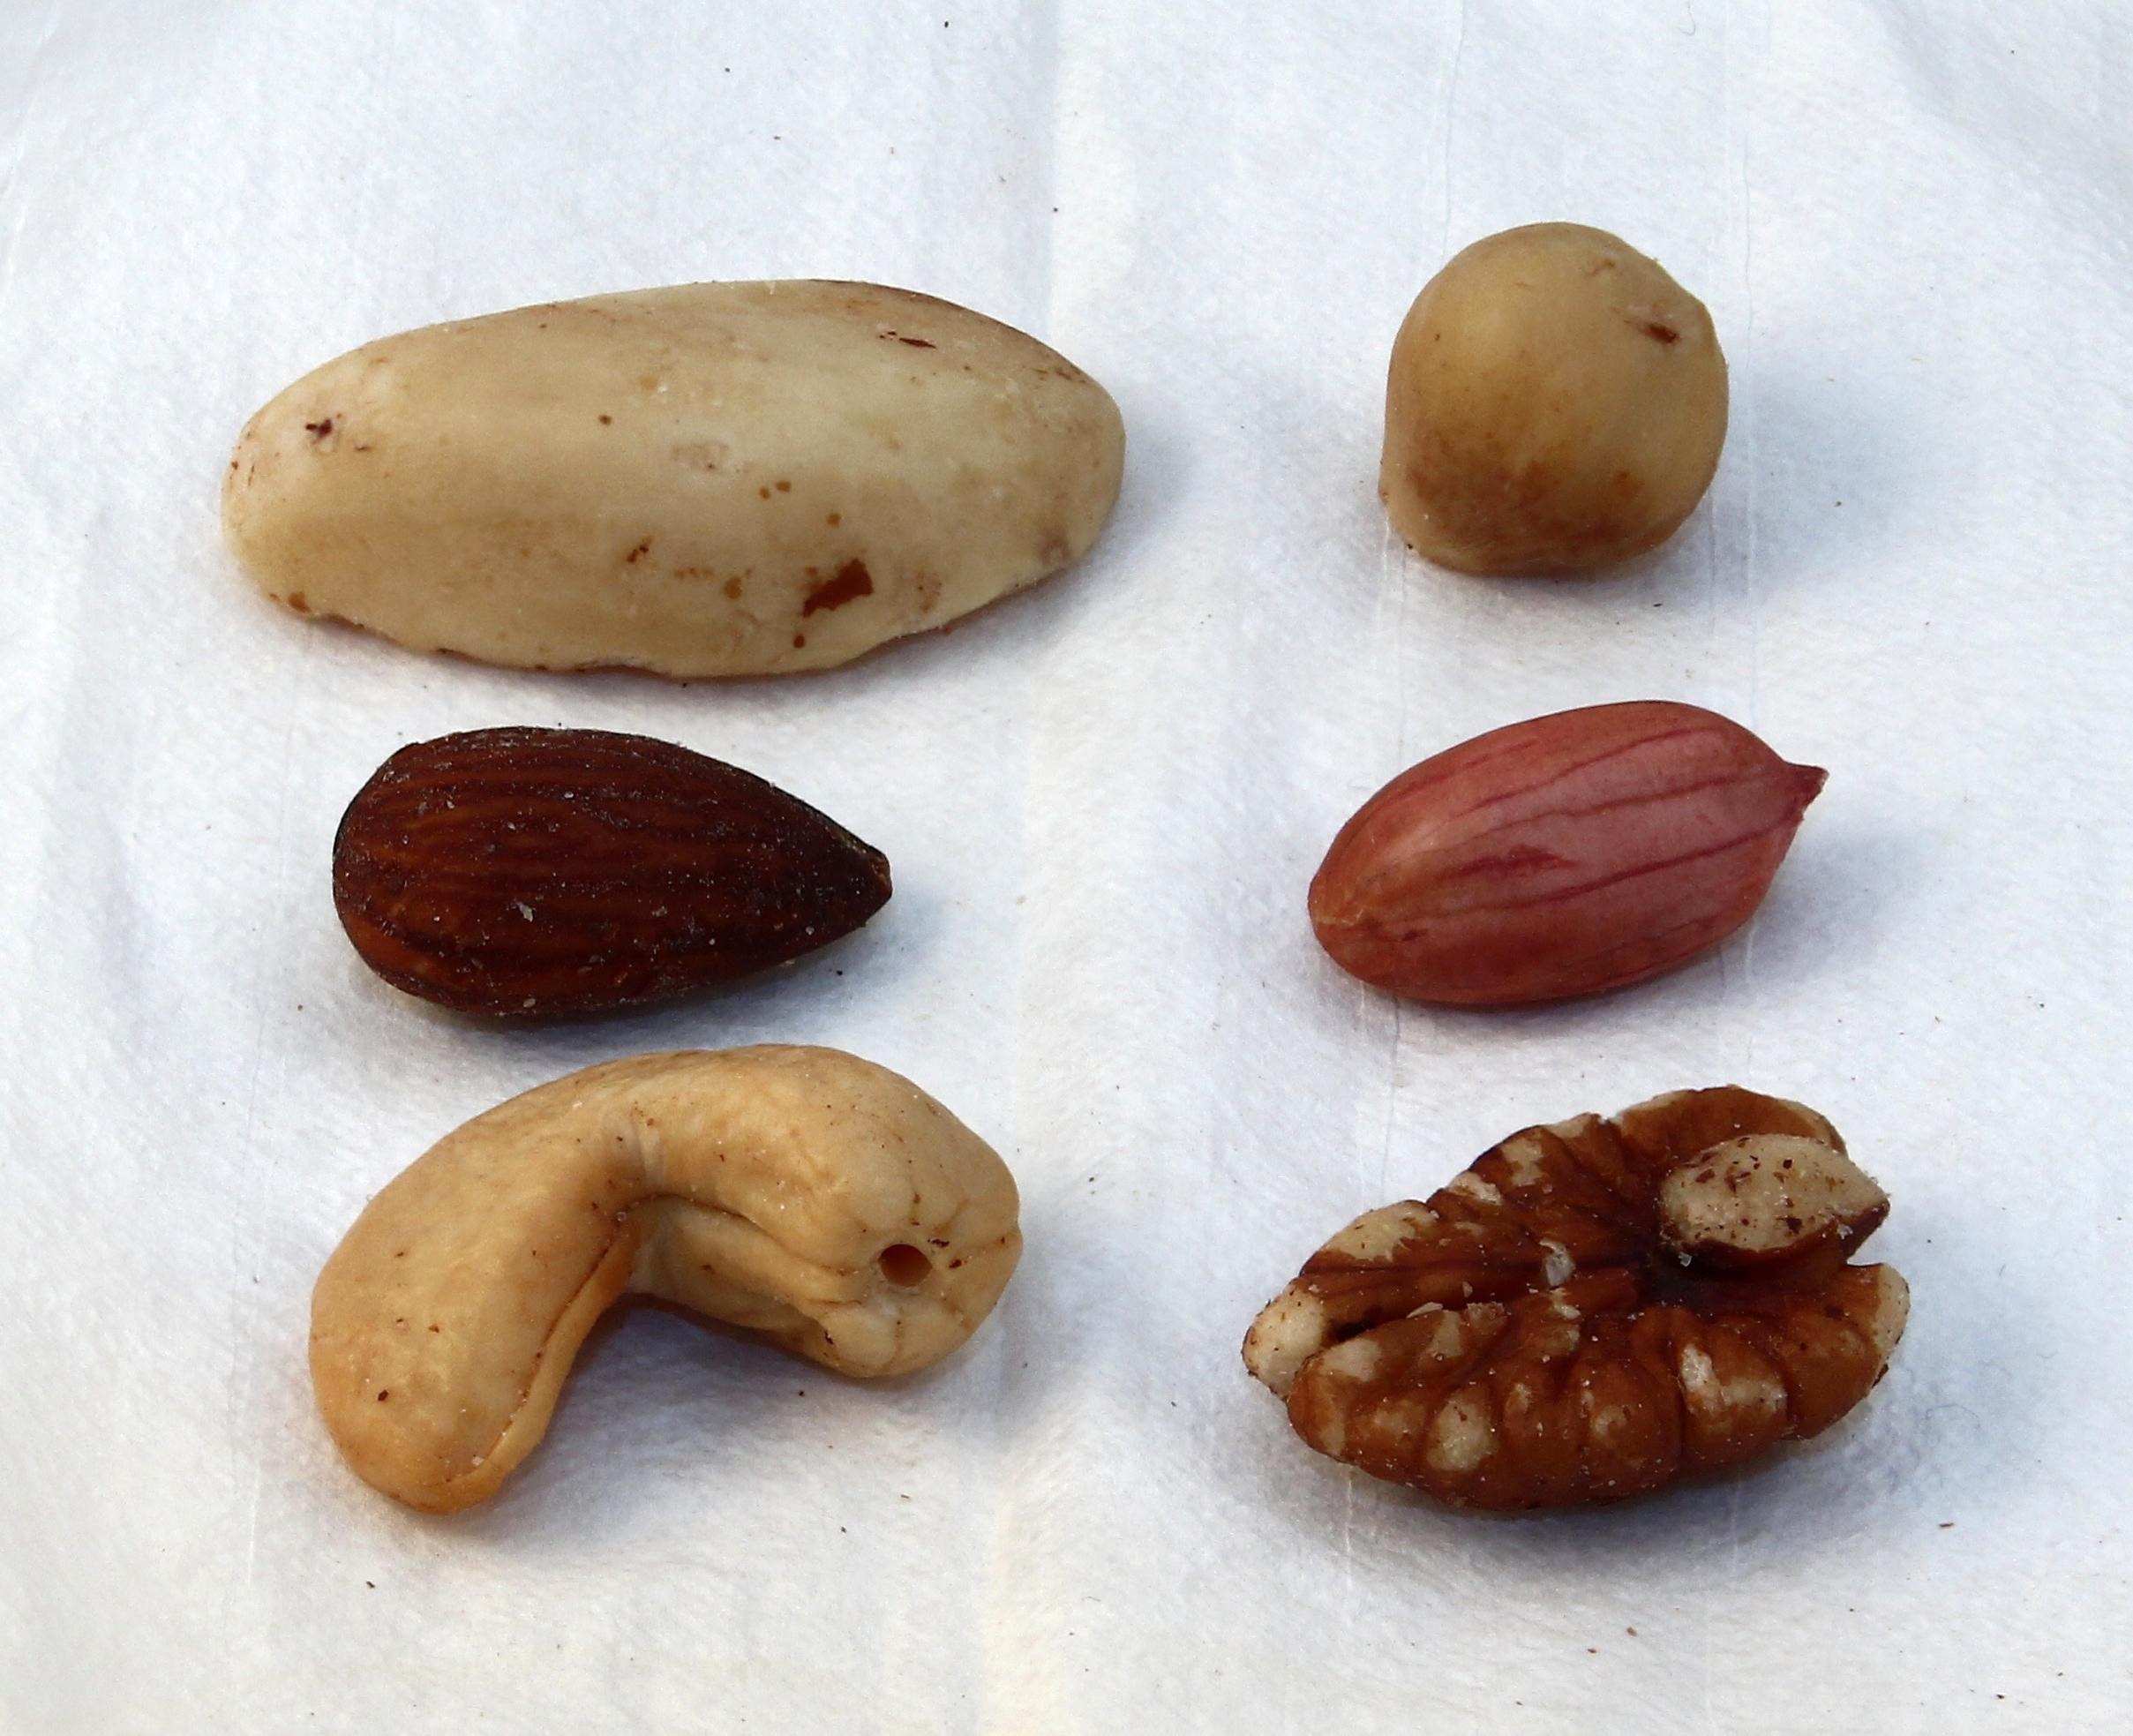 Christmas Planters Peanuts.Mixed Nuts Wikipedia